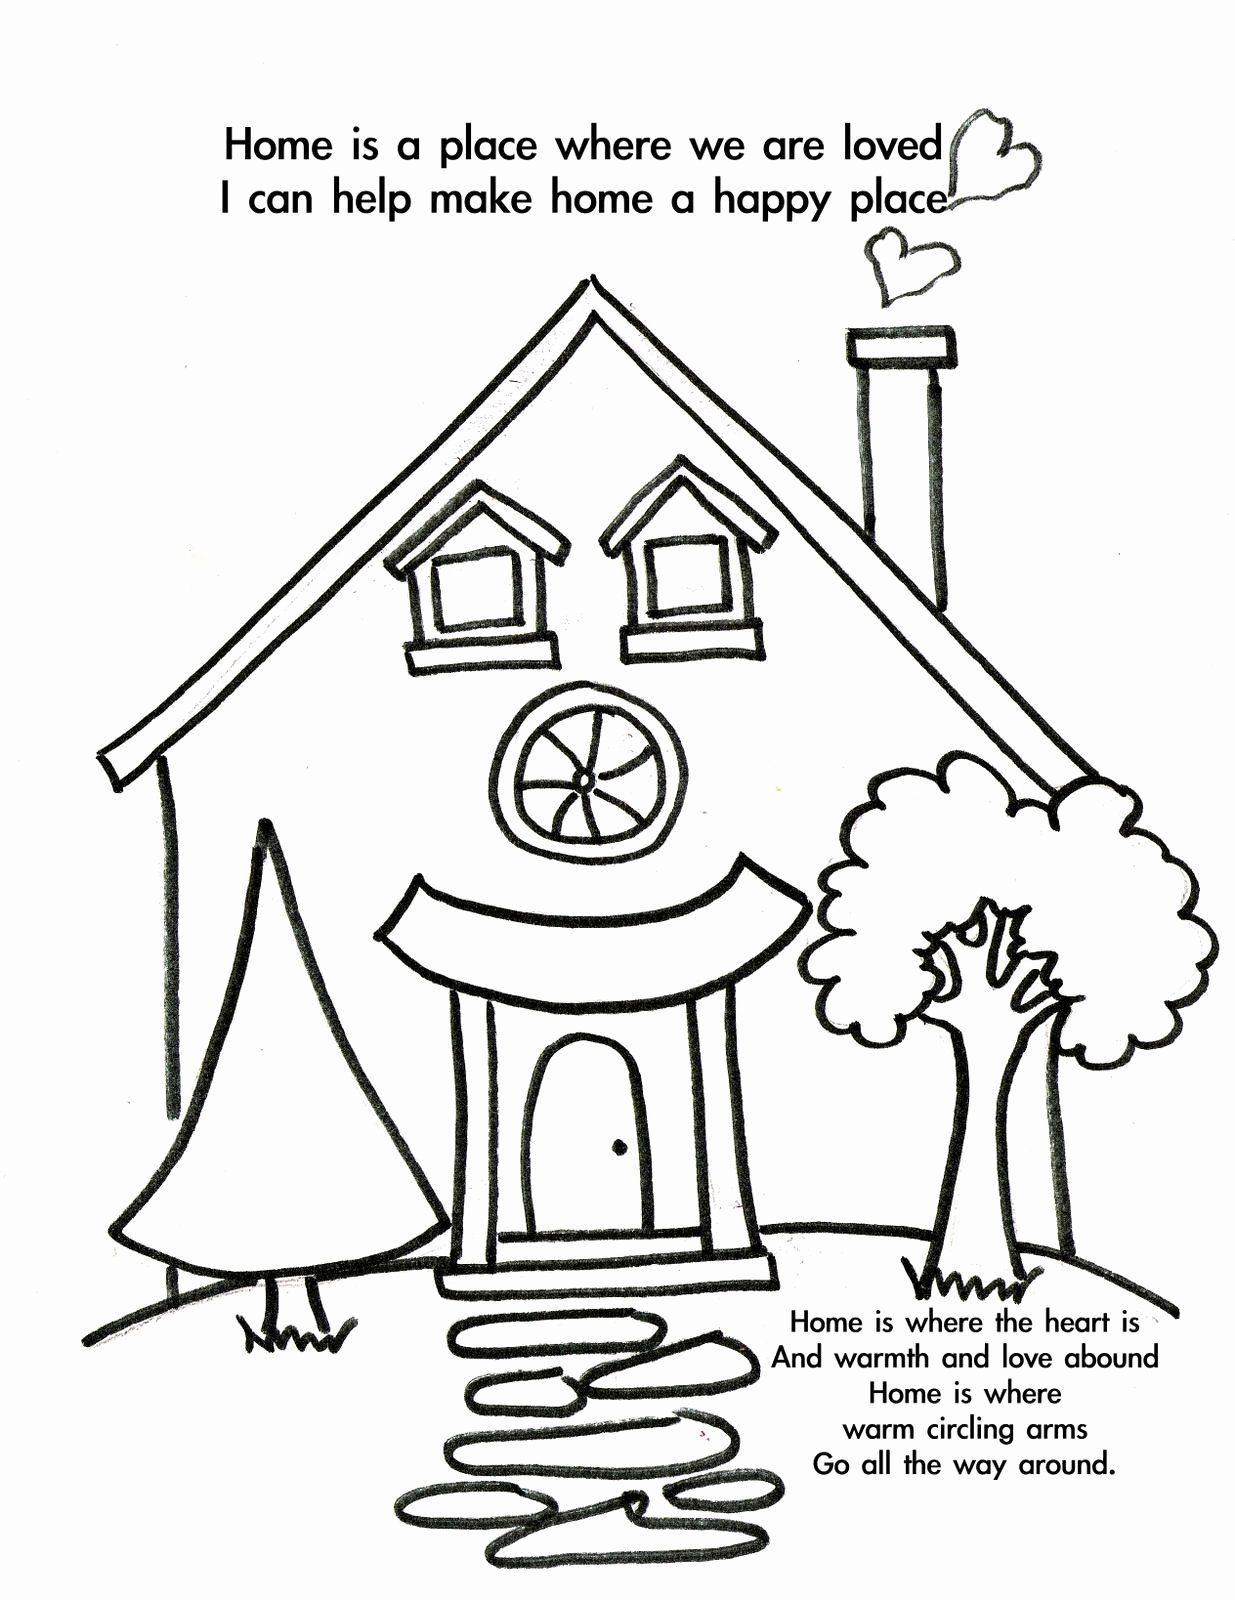 Welcome Home Coloring Page Inspirational Free Wel E Home Coloring Pages Coloring H Coloring Pages For Kids Coloring Pages Inspirational Detailed Coloring Pages